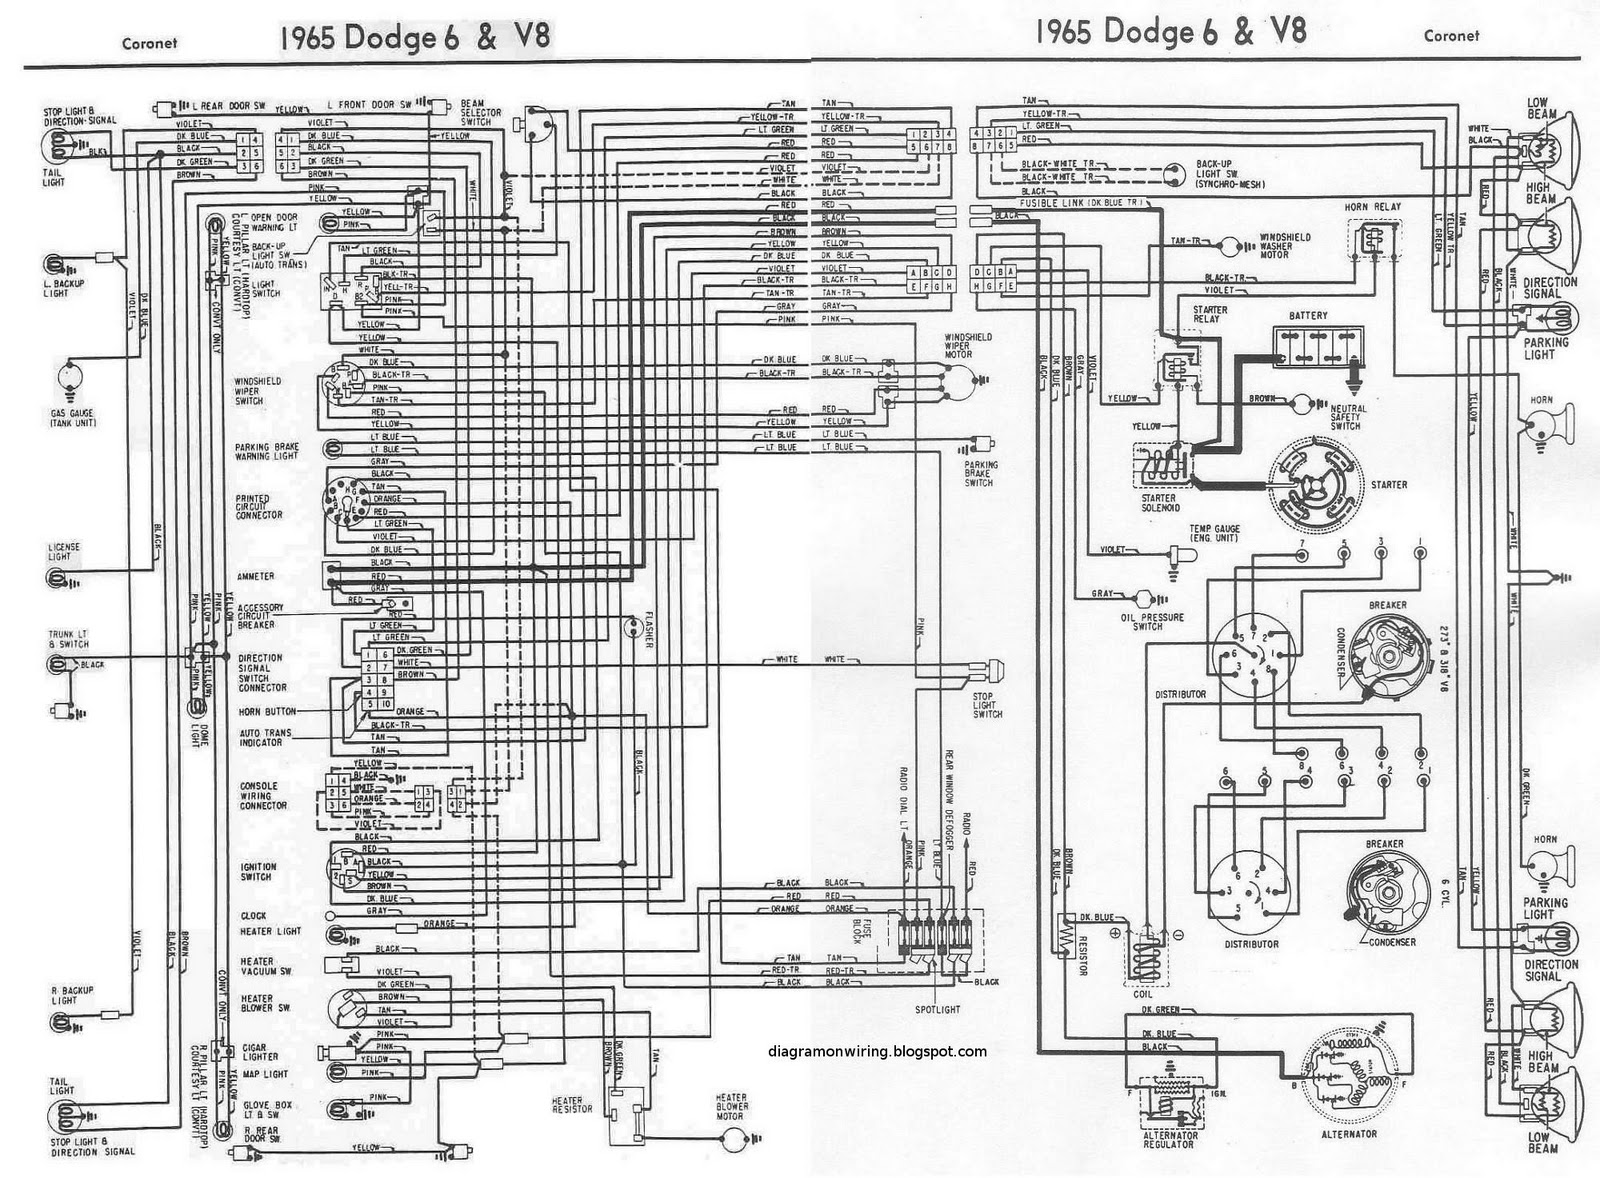 Pleasant 1969 Charger Wiring Diagram Wiring Diagram B2 Wiring Cloud Staixaidewilluminateatxorg